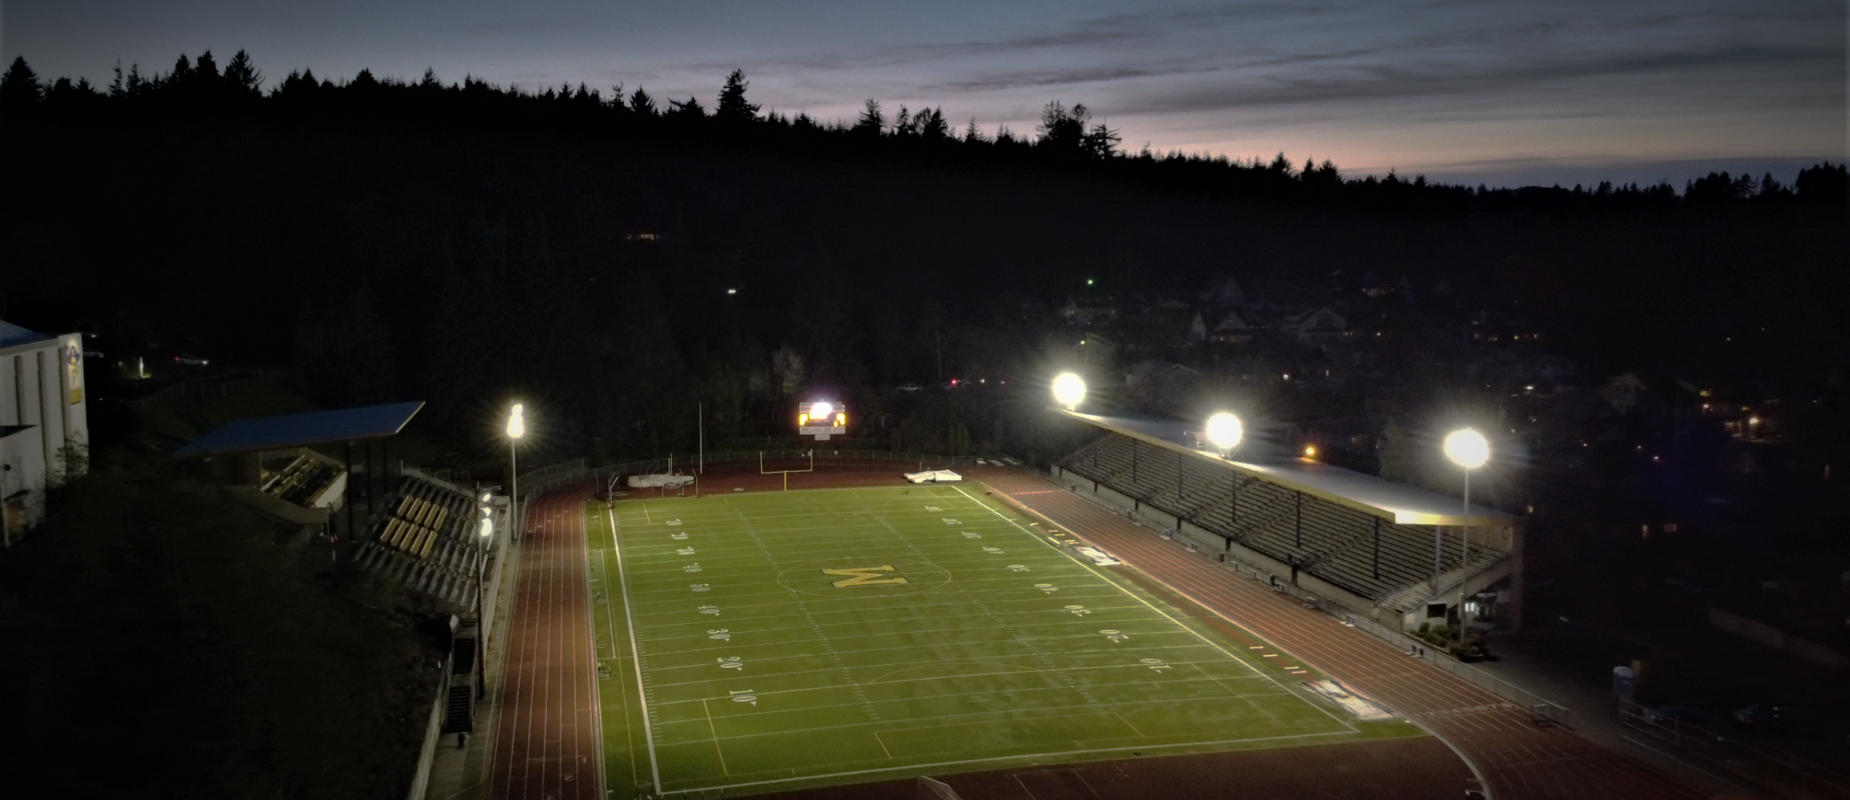 Friday Night Lights - Stadium at Night